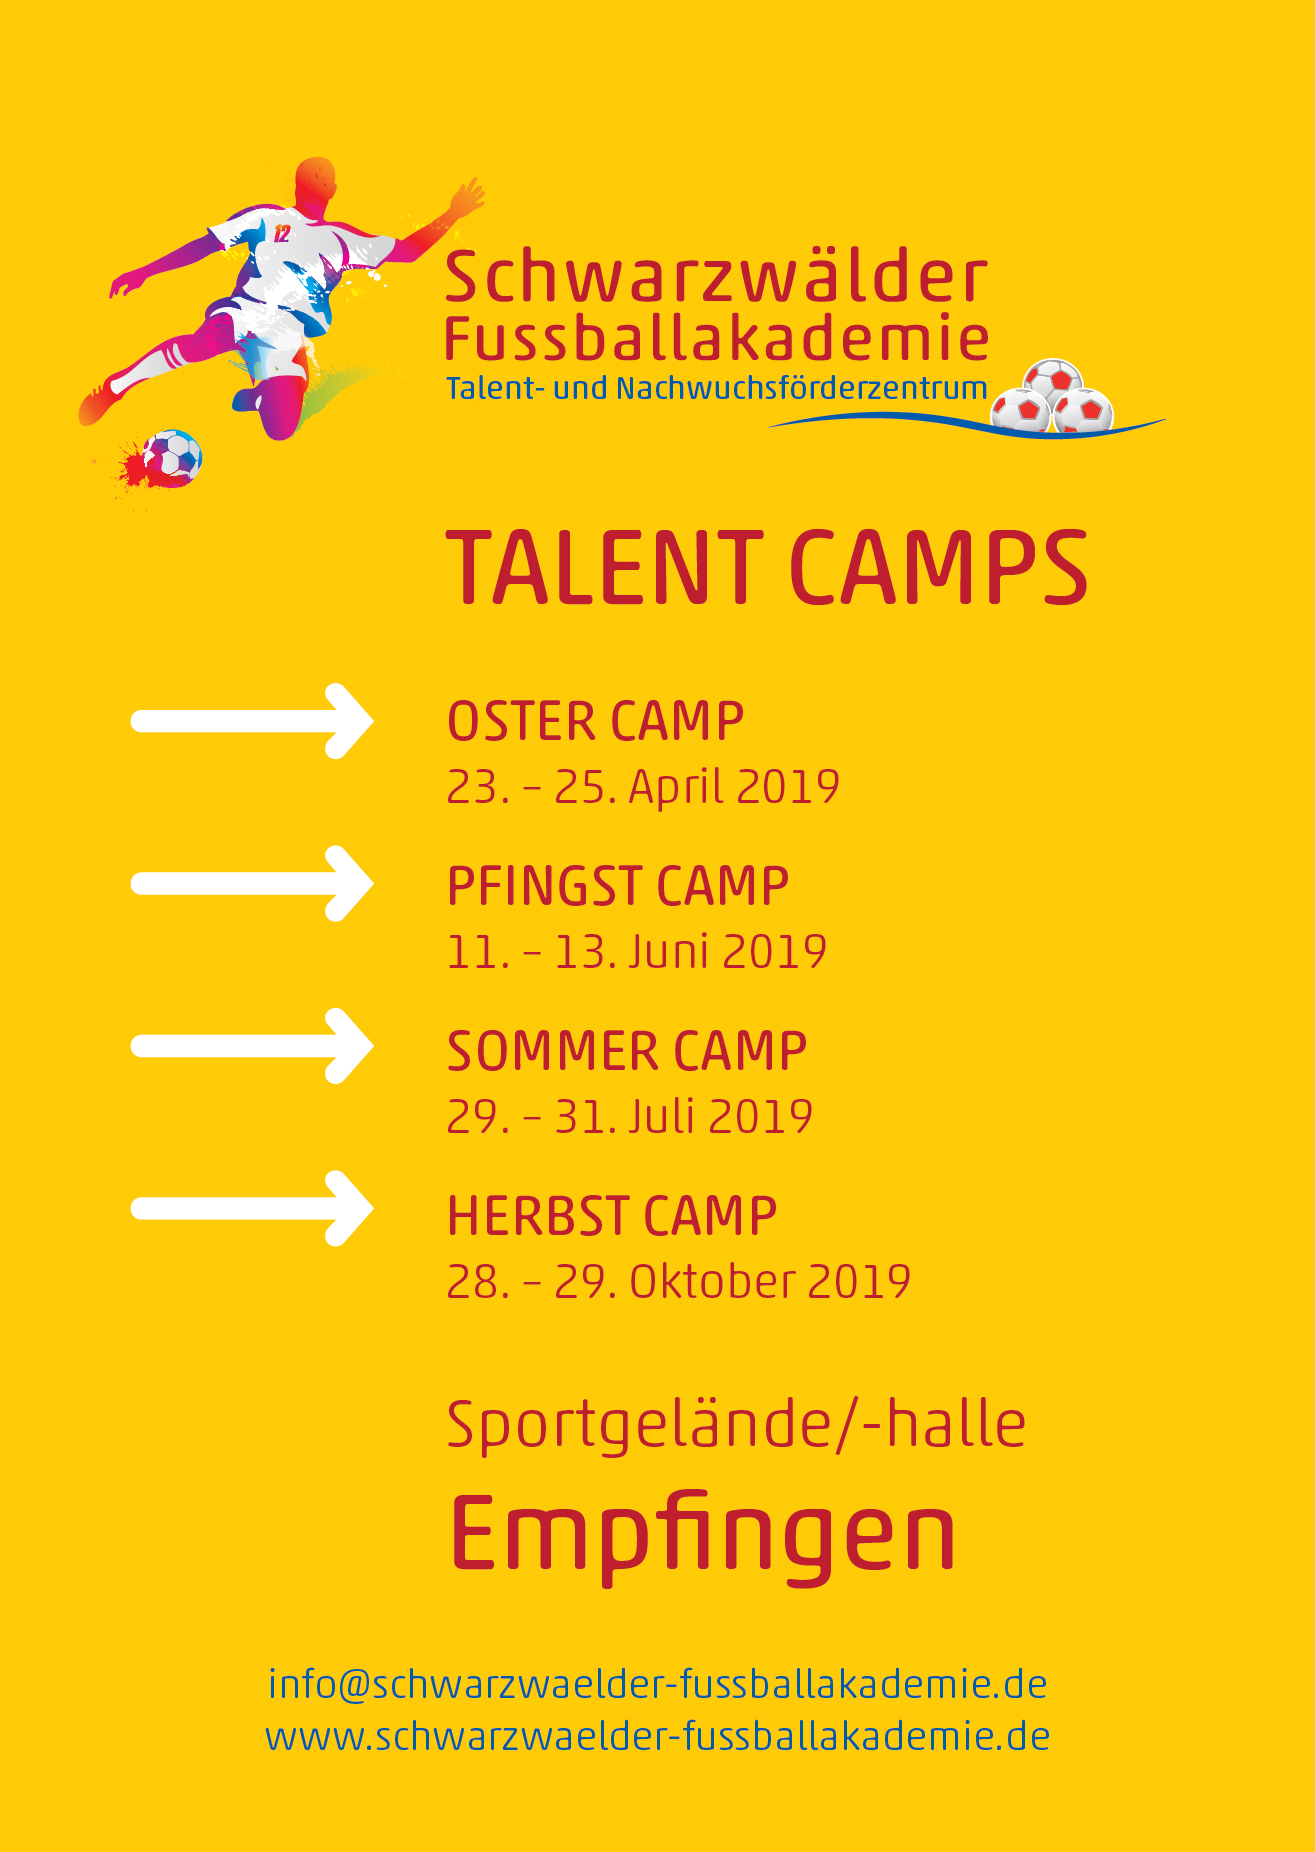 Talent_Camps_Empfingen_2019_Flyer_1.png